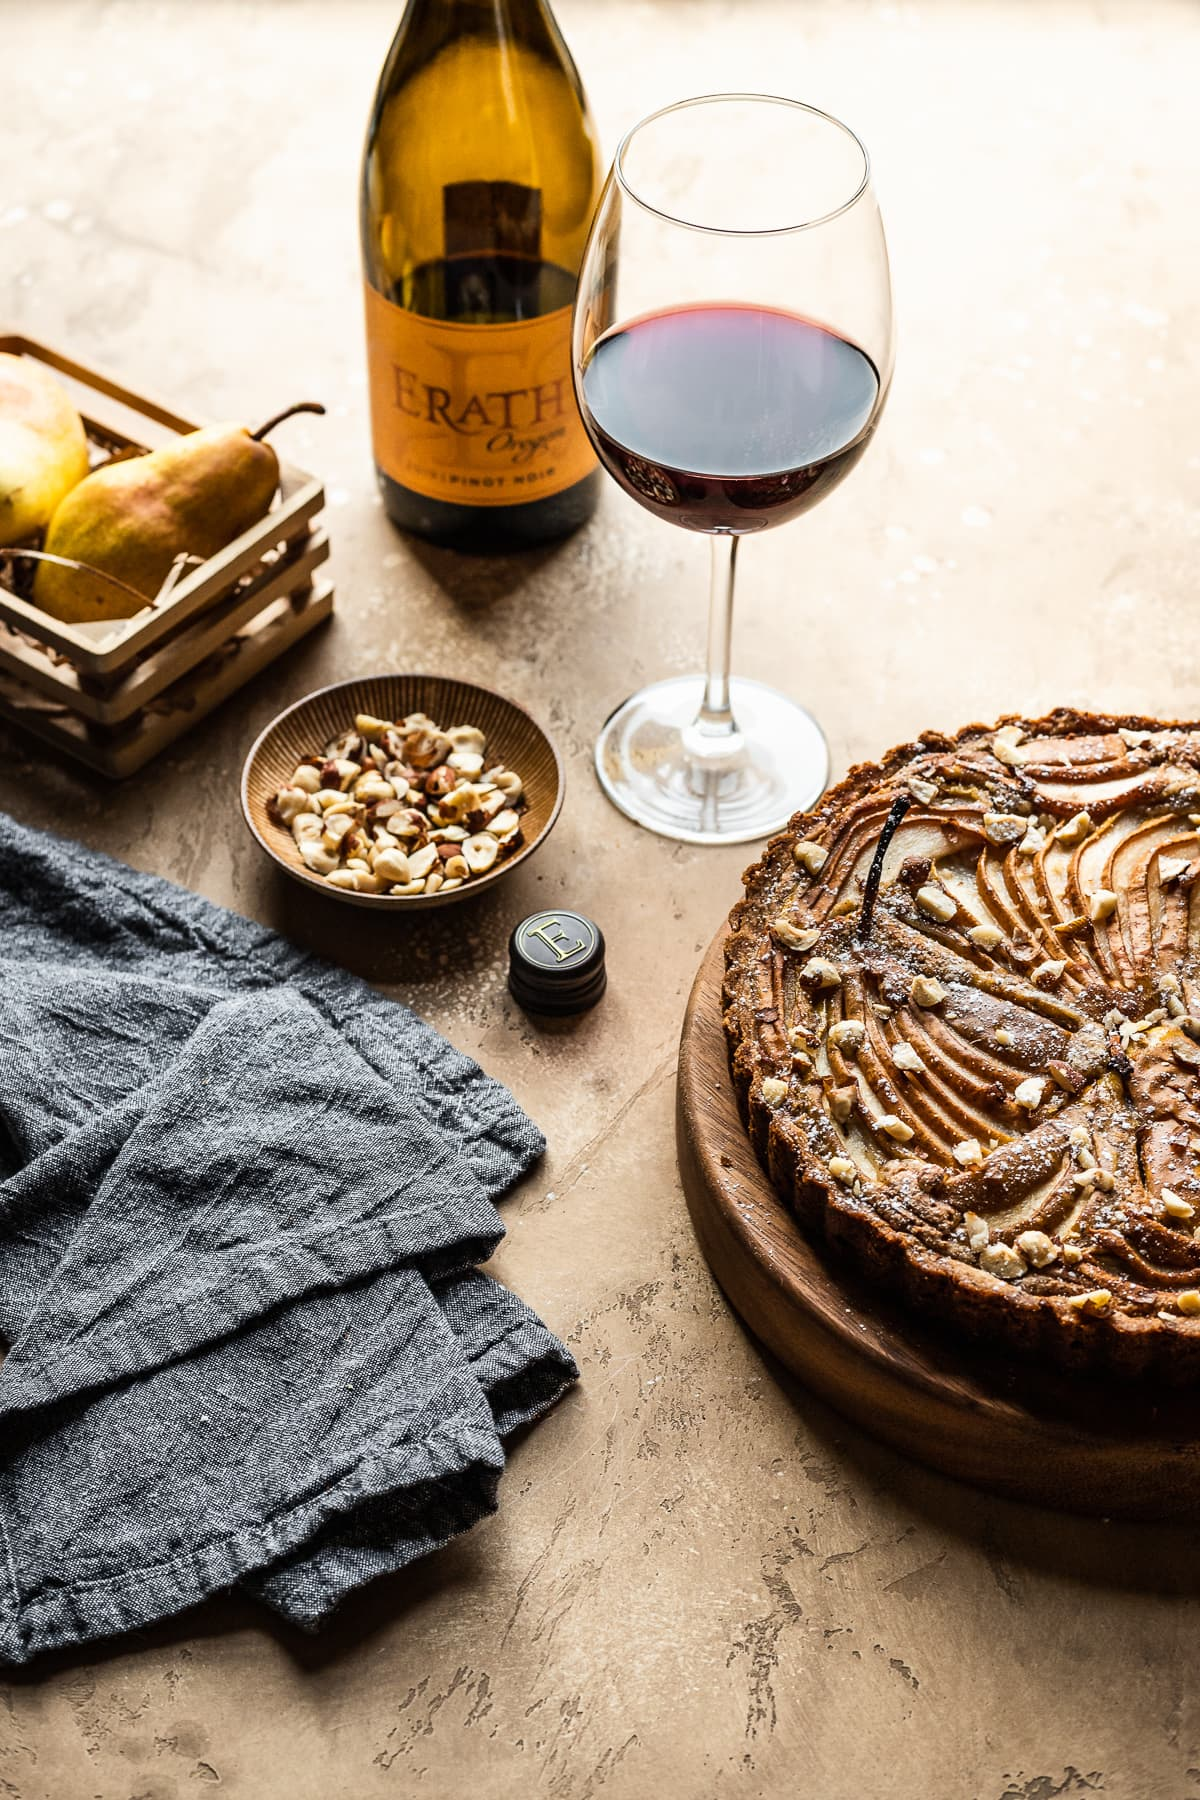 A pear tart on a wooden platter on a warm tan textured background. Nearby is a small bowl of nuts, a grey textured napkin, a small wooden crate of pears, and a glass of red wine with bottle.